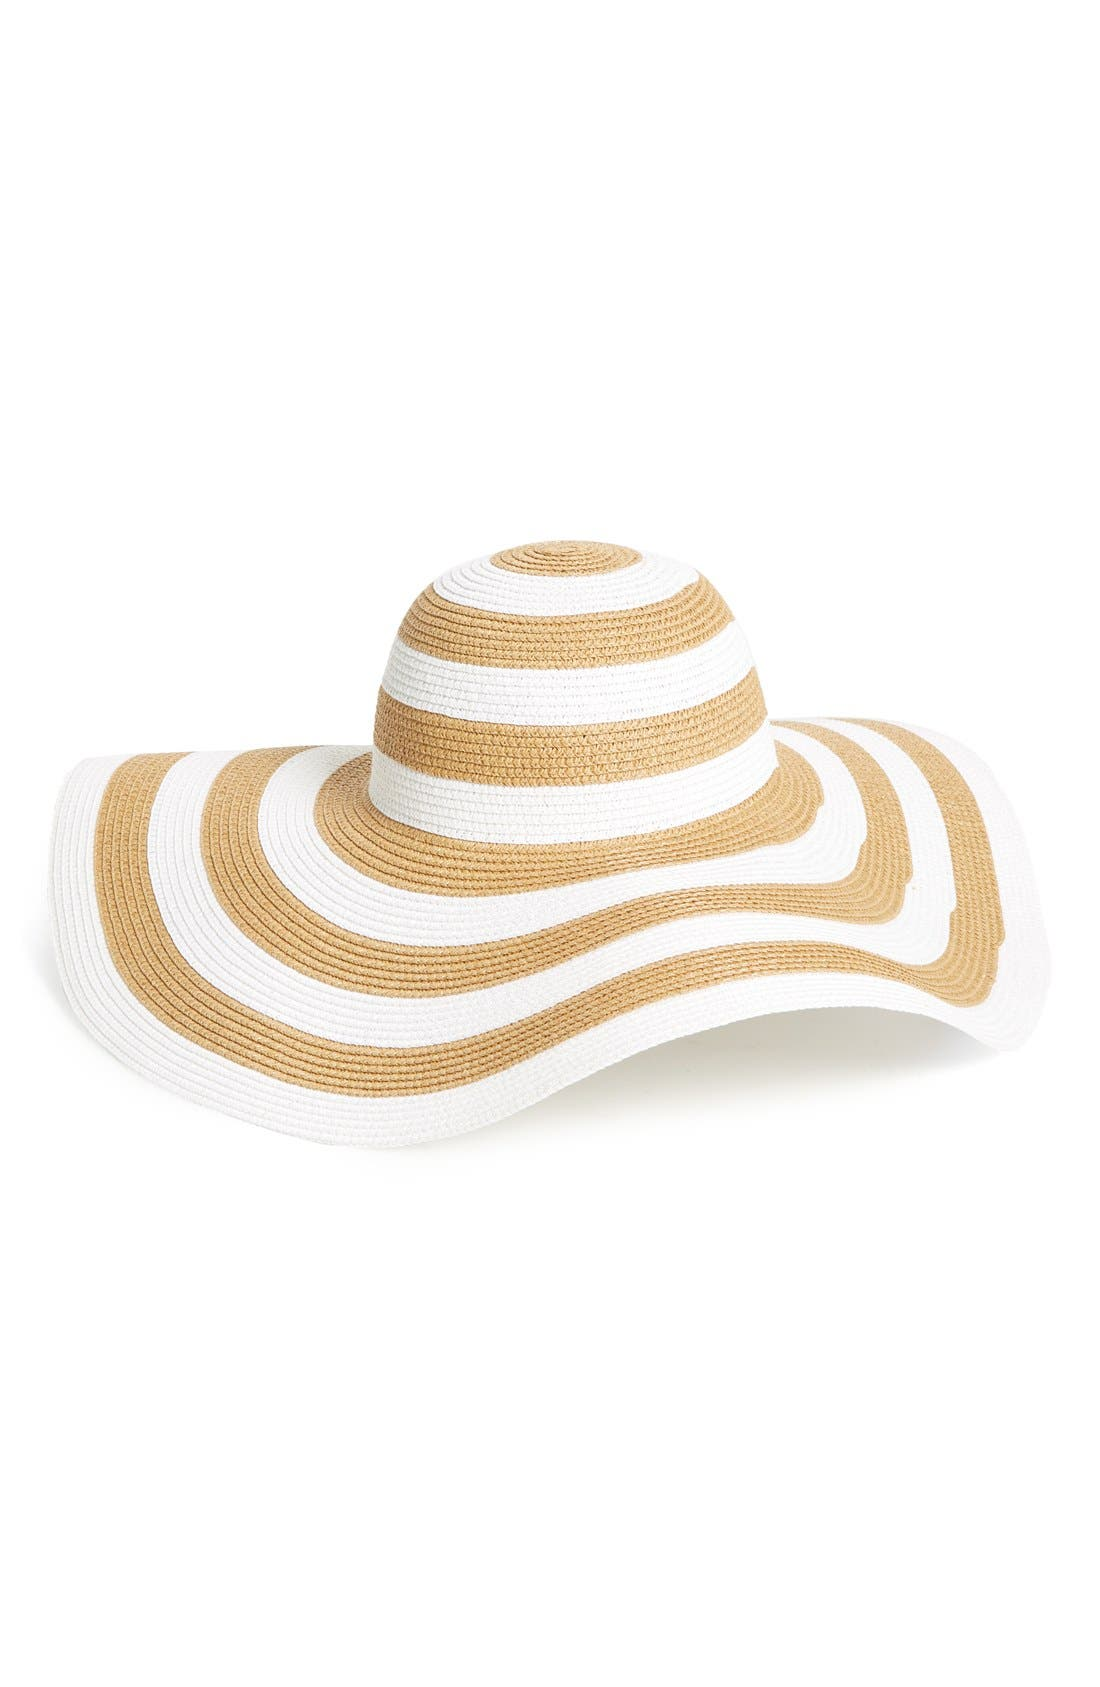 Main Image - BP. Oversize Packable Straw Hat